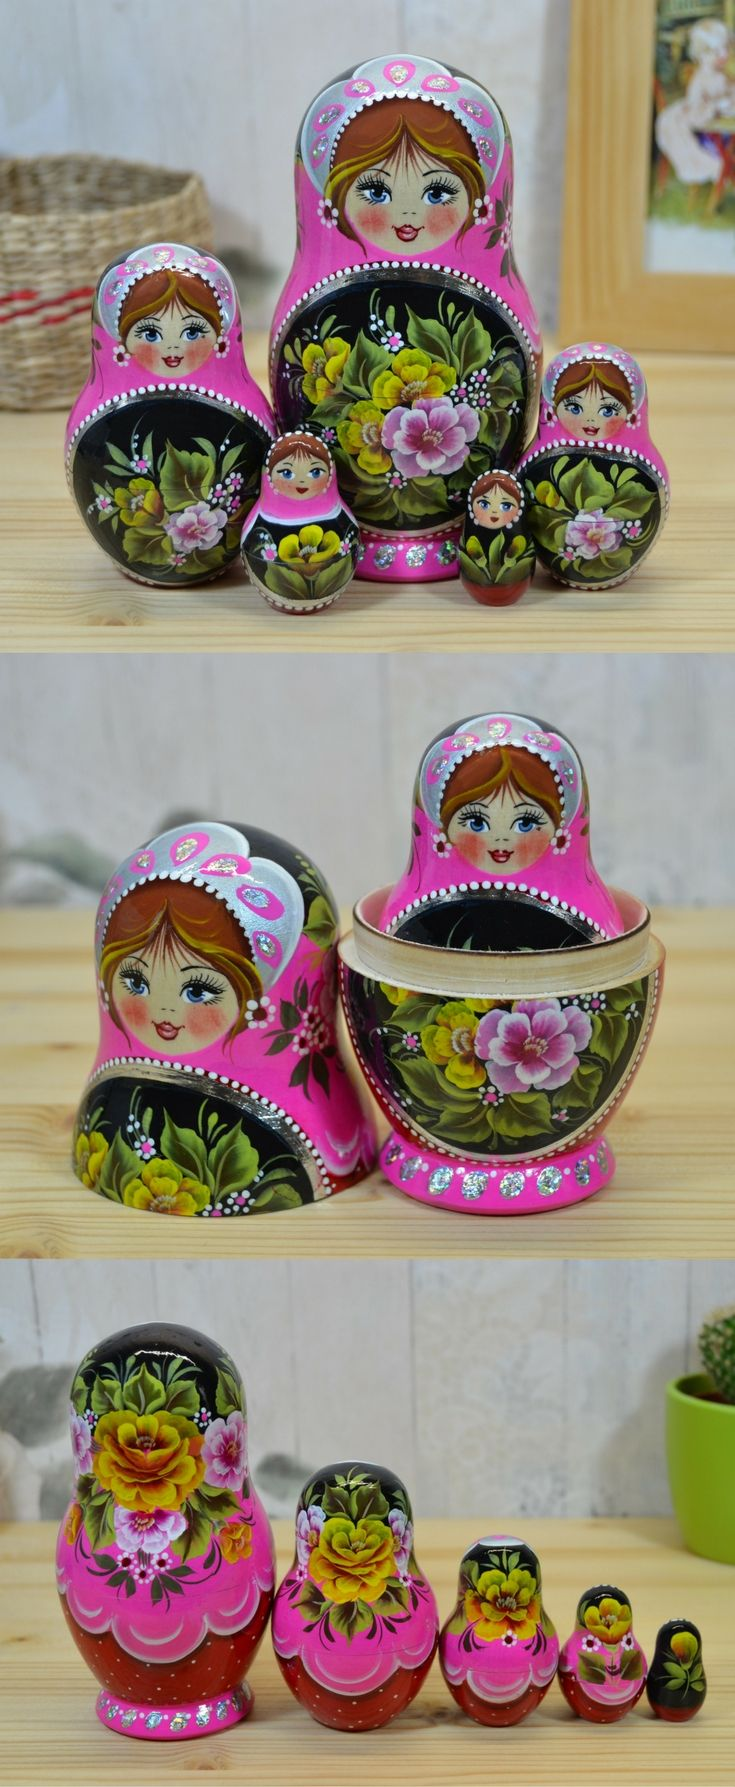 épinglé par ❃❀CM❁✿⊱russian babushka doll in pink and black design